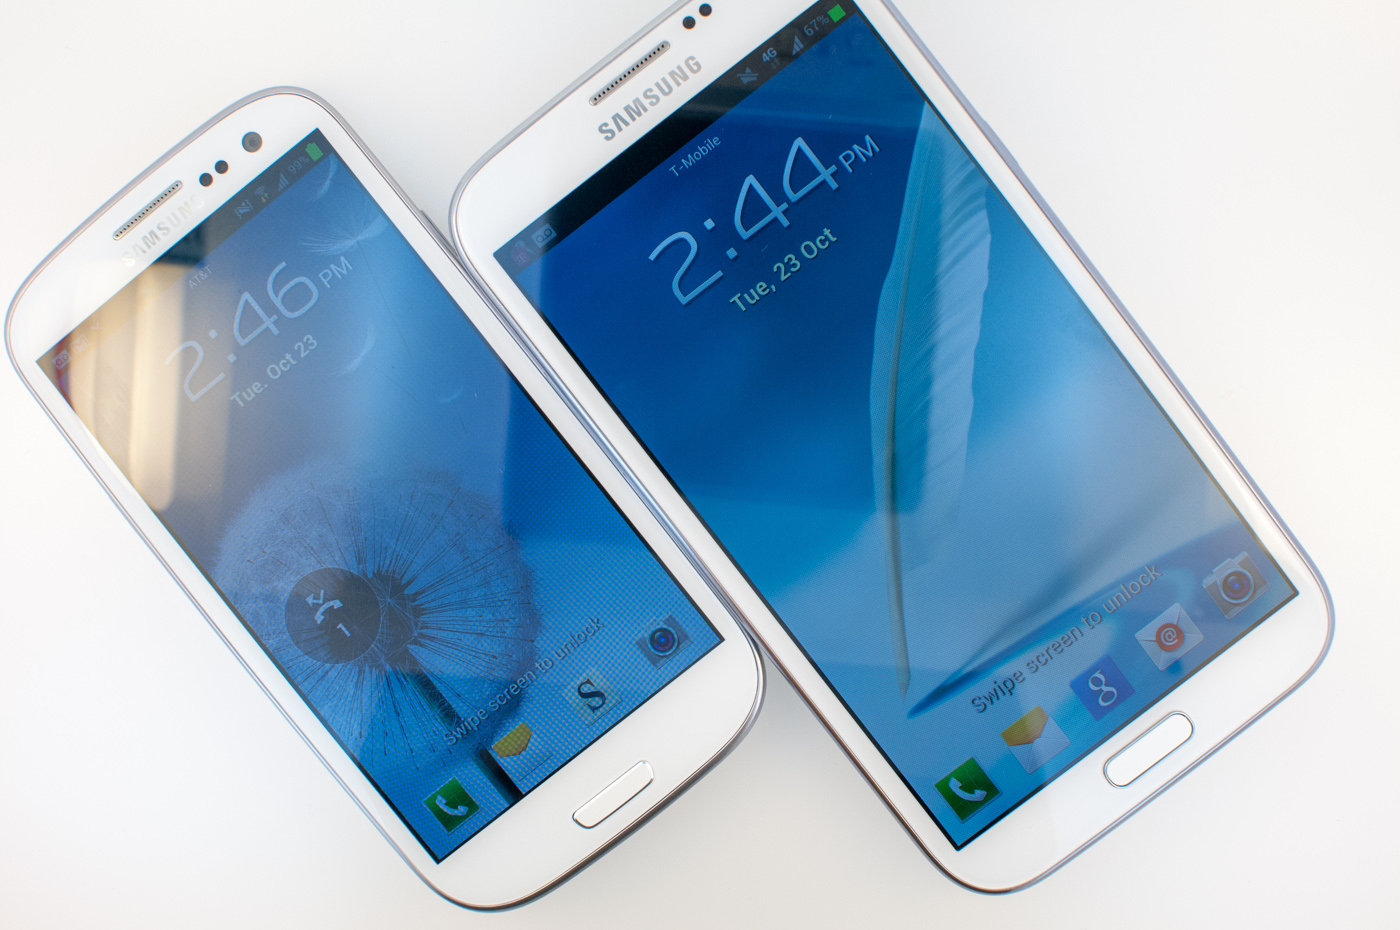 Galaxy note 2 left galaxy note right